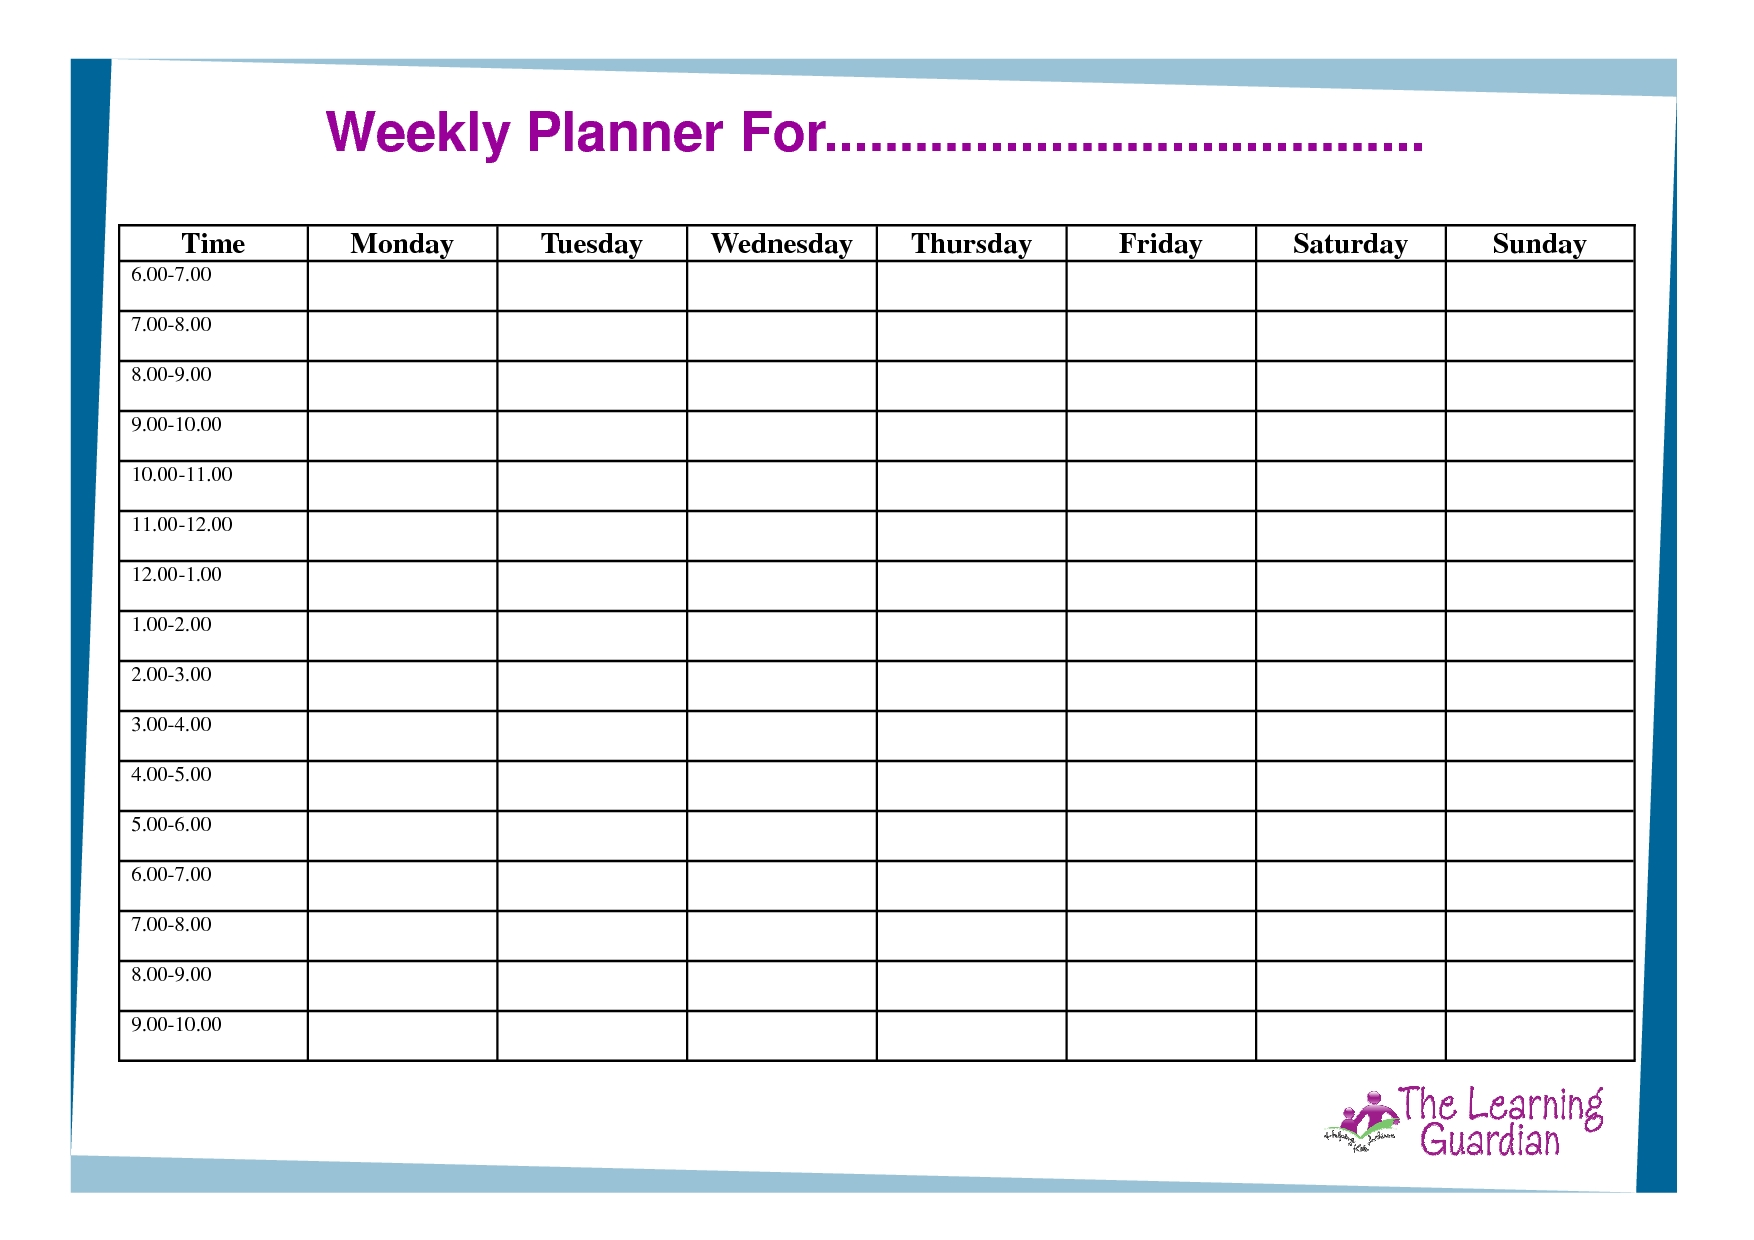 Free Printable Weekly Calendar Templates Planner For Time Incredible  7 Day Weekly Planner Template Printable